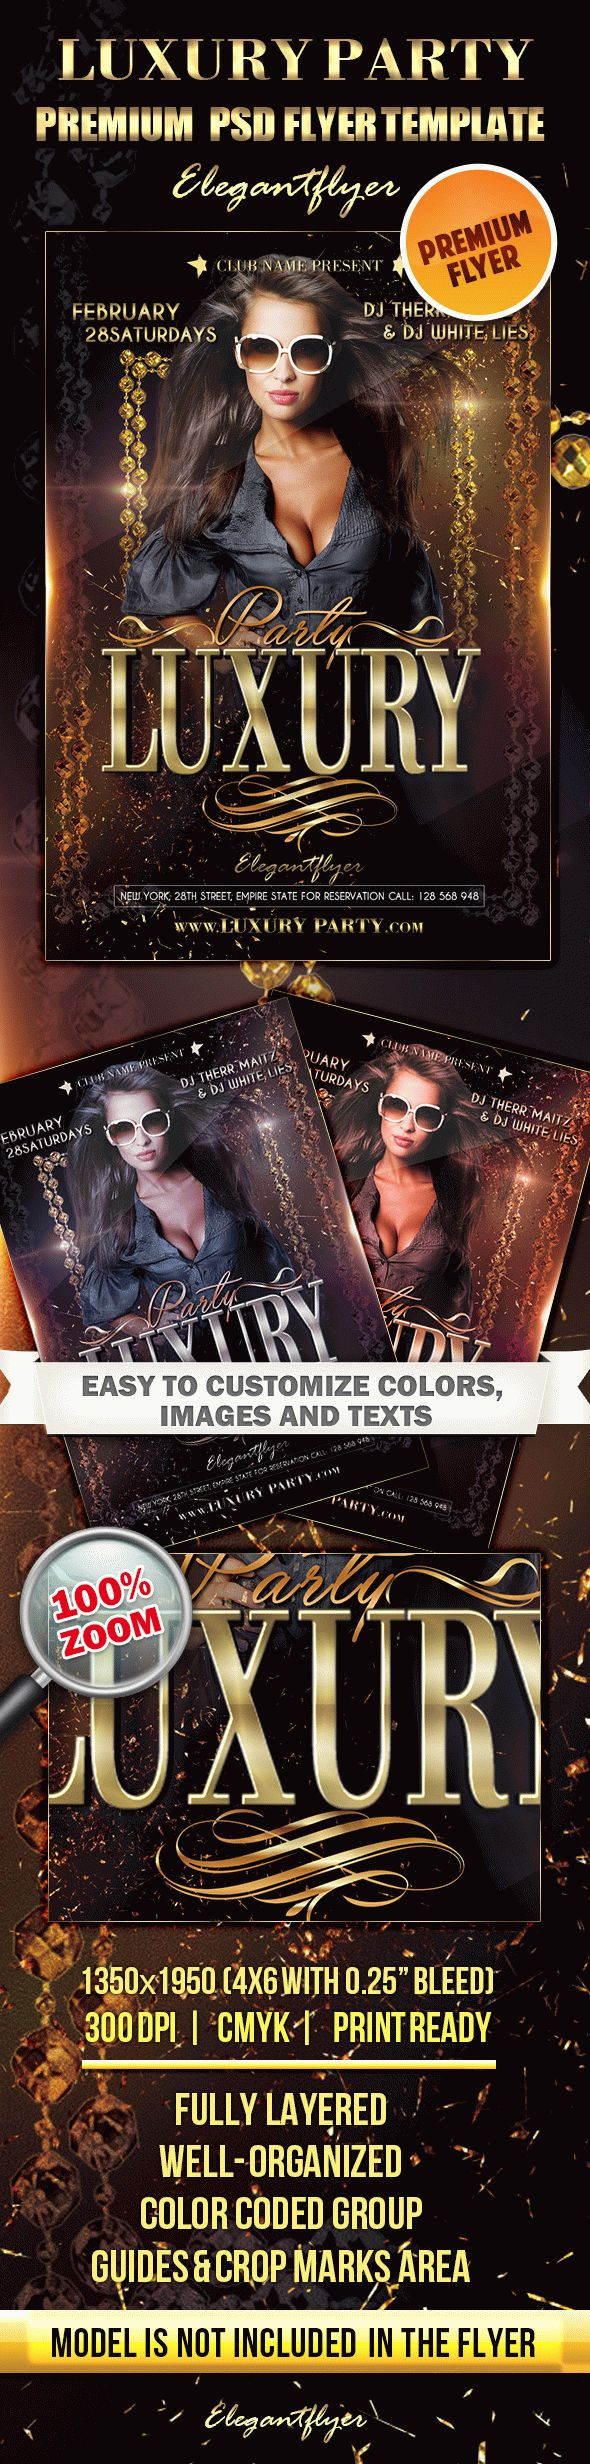 Luxury Party – Premium Club flyer PSD Template